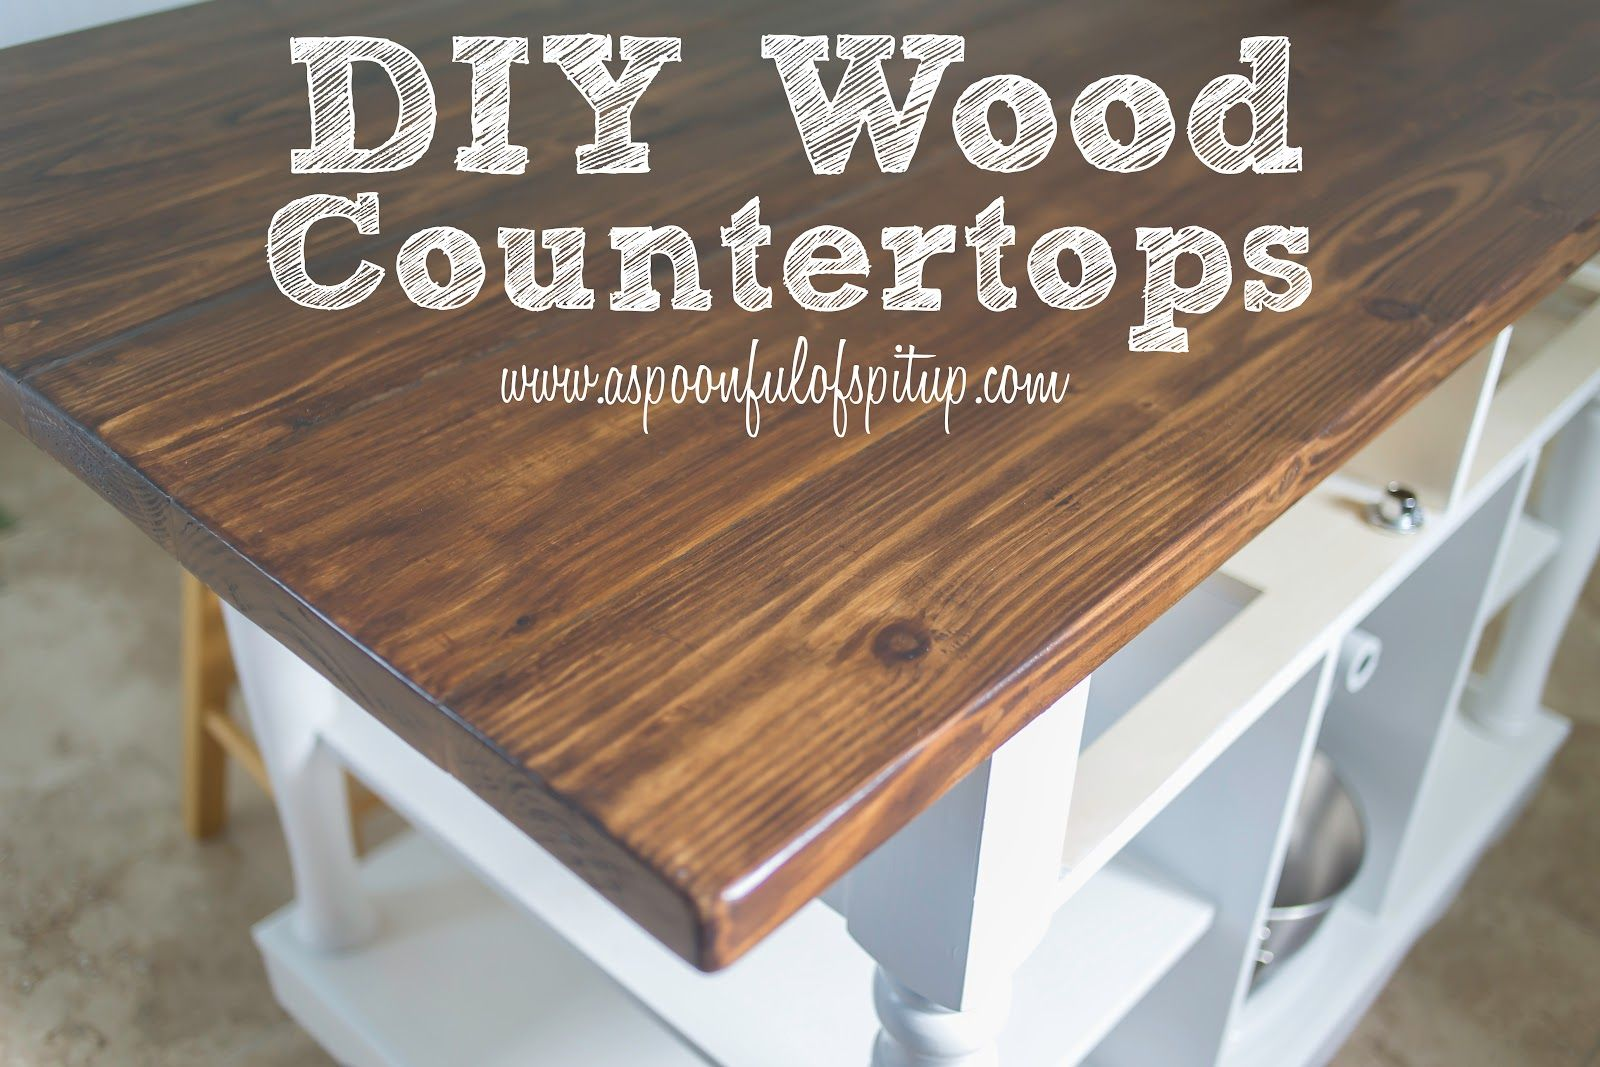 Uncategorized Diy Kitchen Countertops a spoonful of spit up diy wood butcher block countertops find this pin and more on charming for kitchen